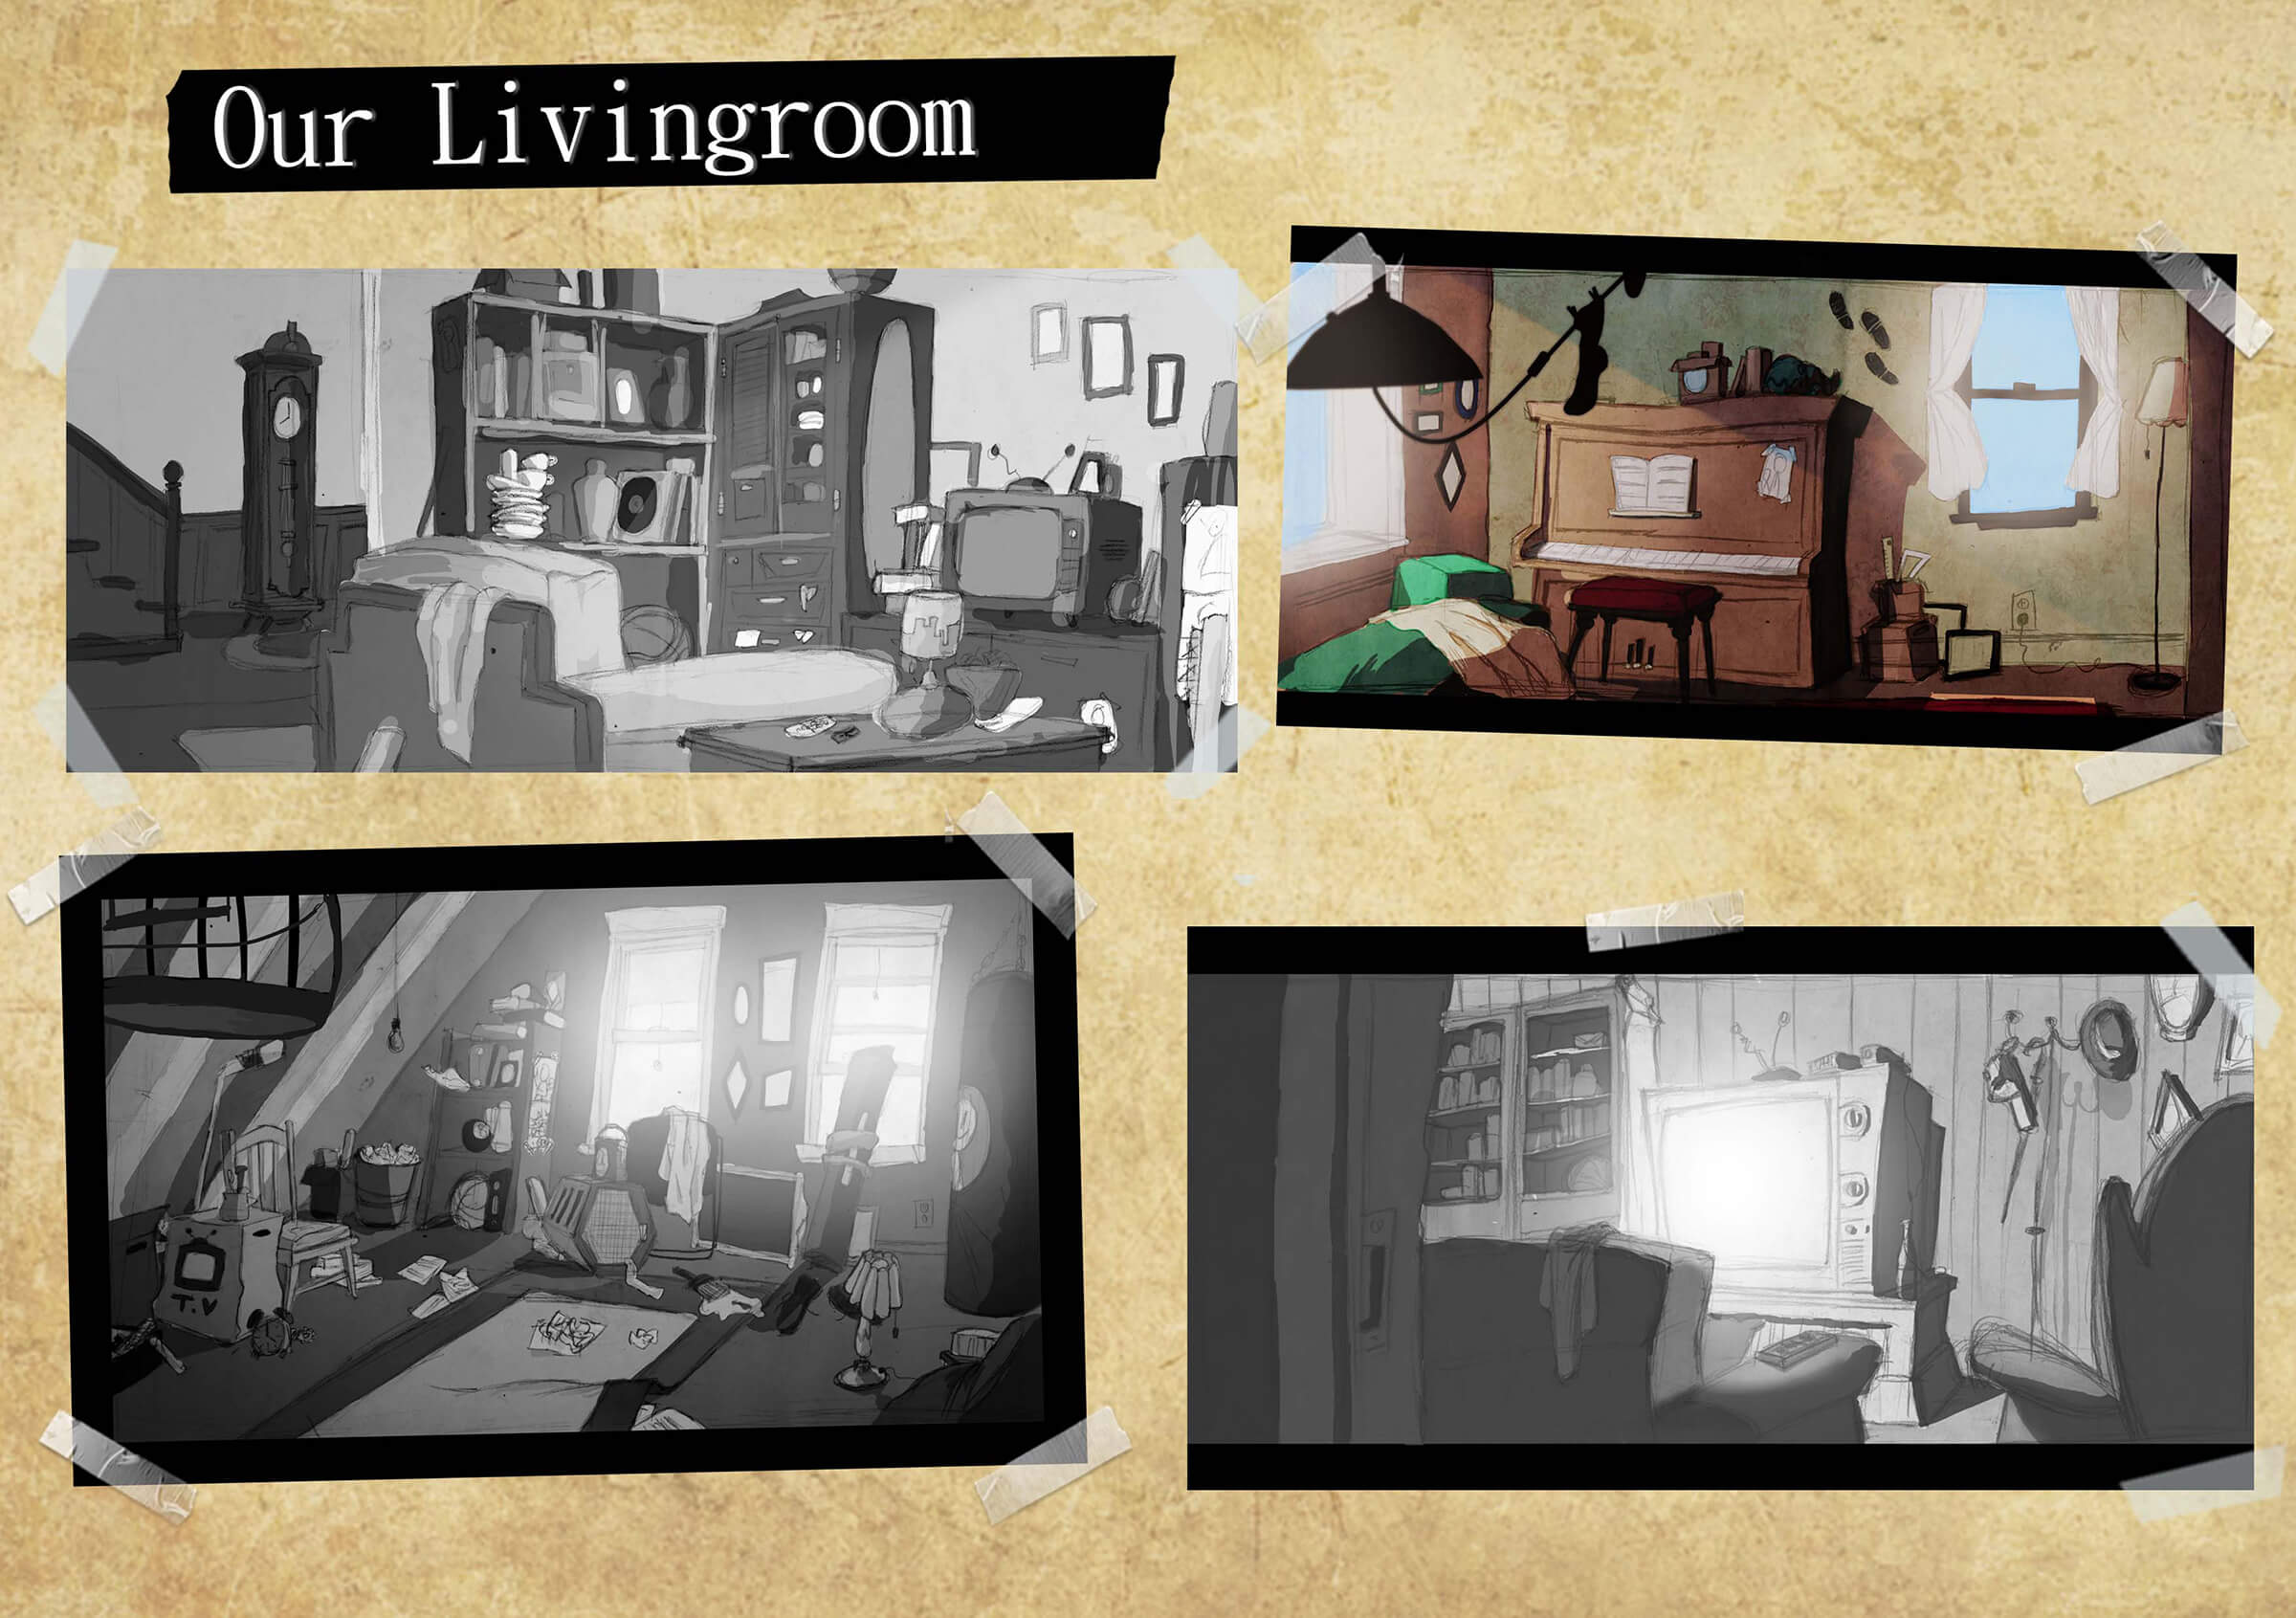 Concept art of a messy living room including a couch, television, upright piano, lamps, a grandfather clock, and shelves.